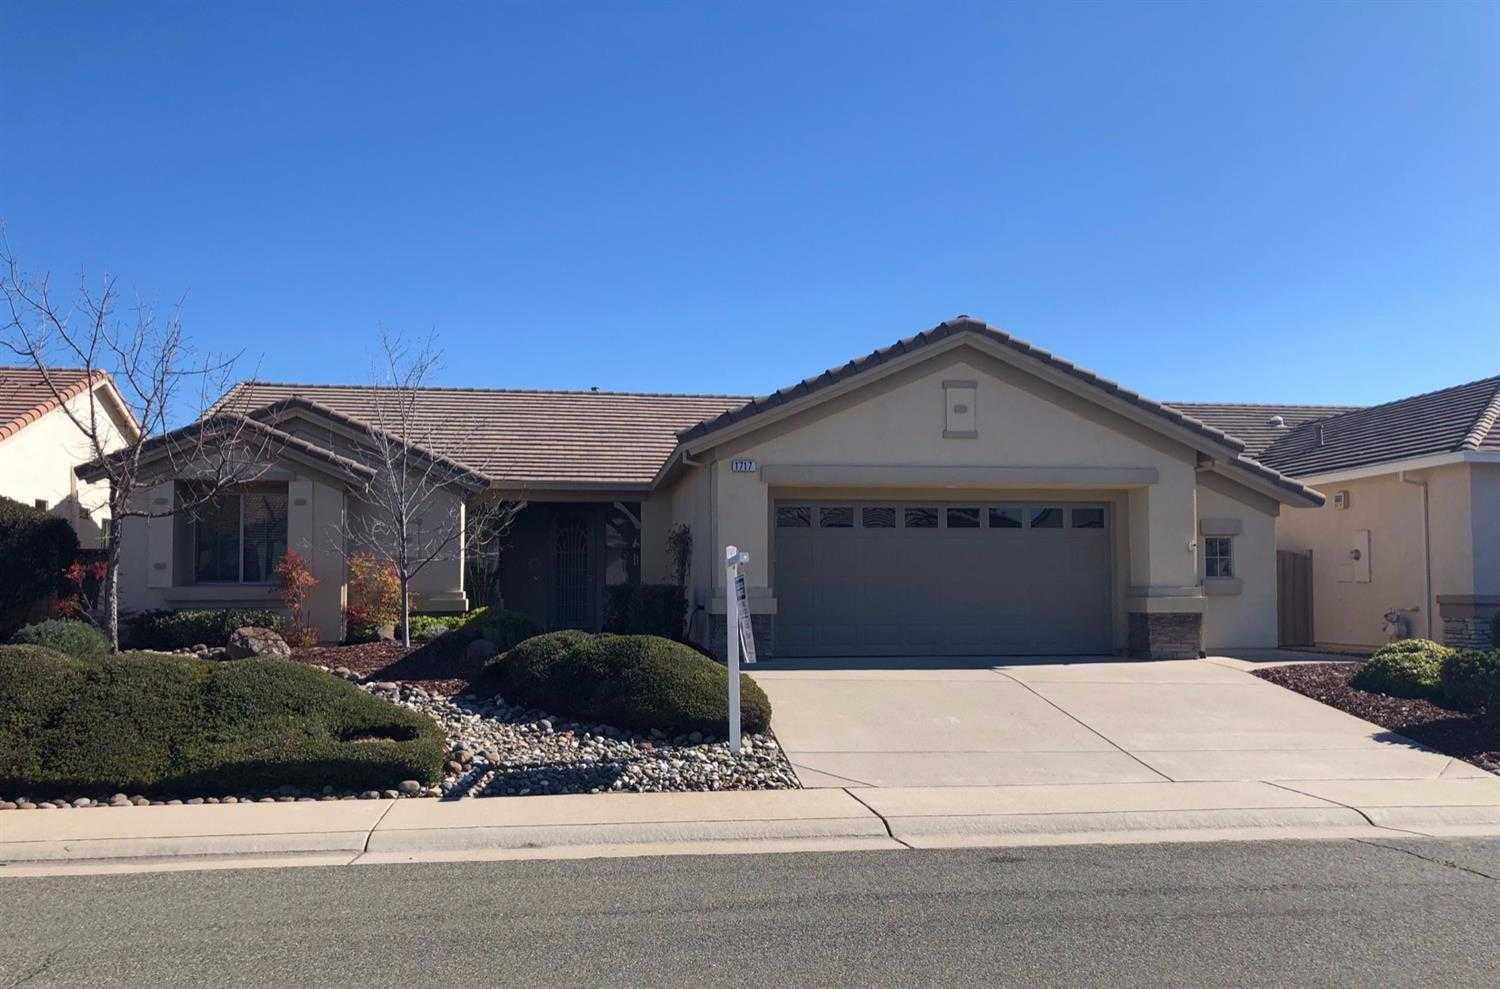 $584,950 - 2Br/2Ba -  for Sale in Sun City Lincoln Hills, Lincoln